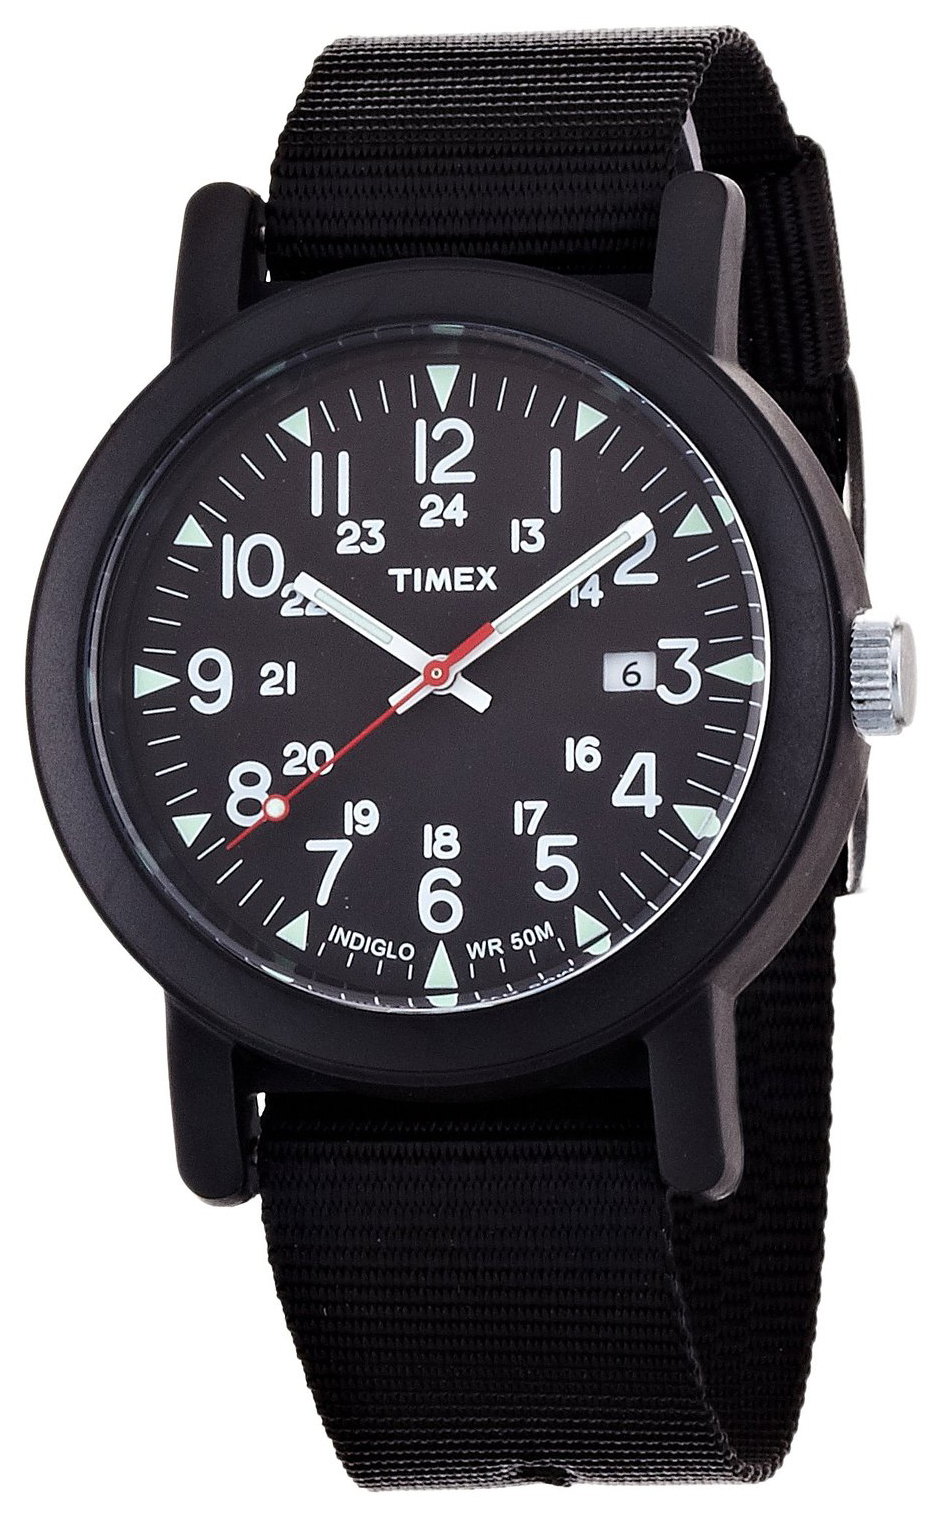 Timex Premium Collection Herrklocka T2N364 Svart/Textil Ø38 mm - Timex